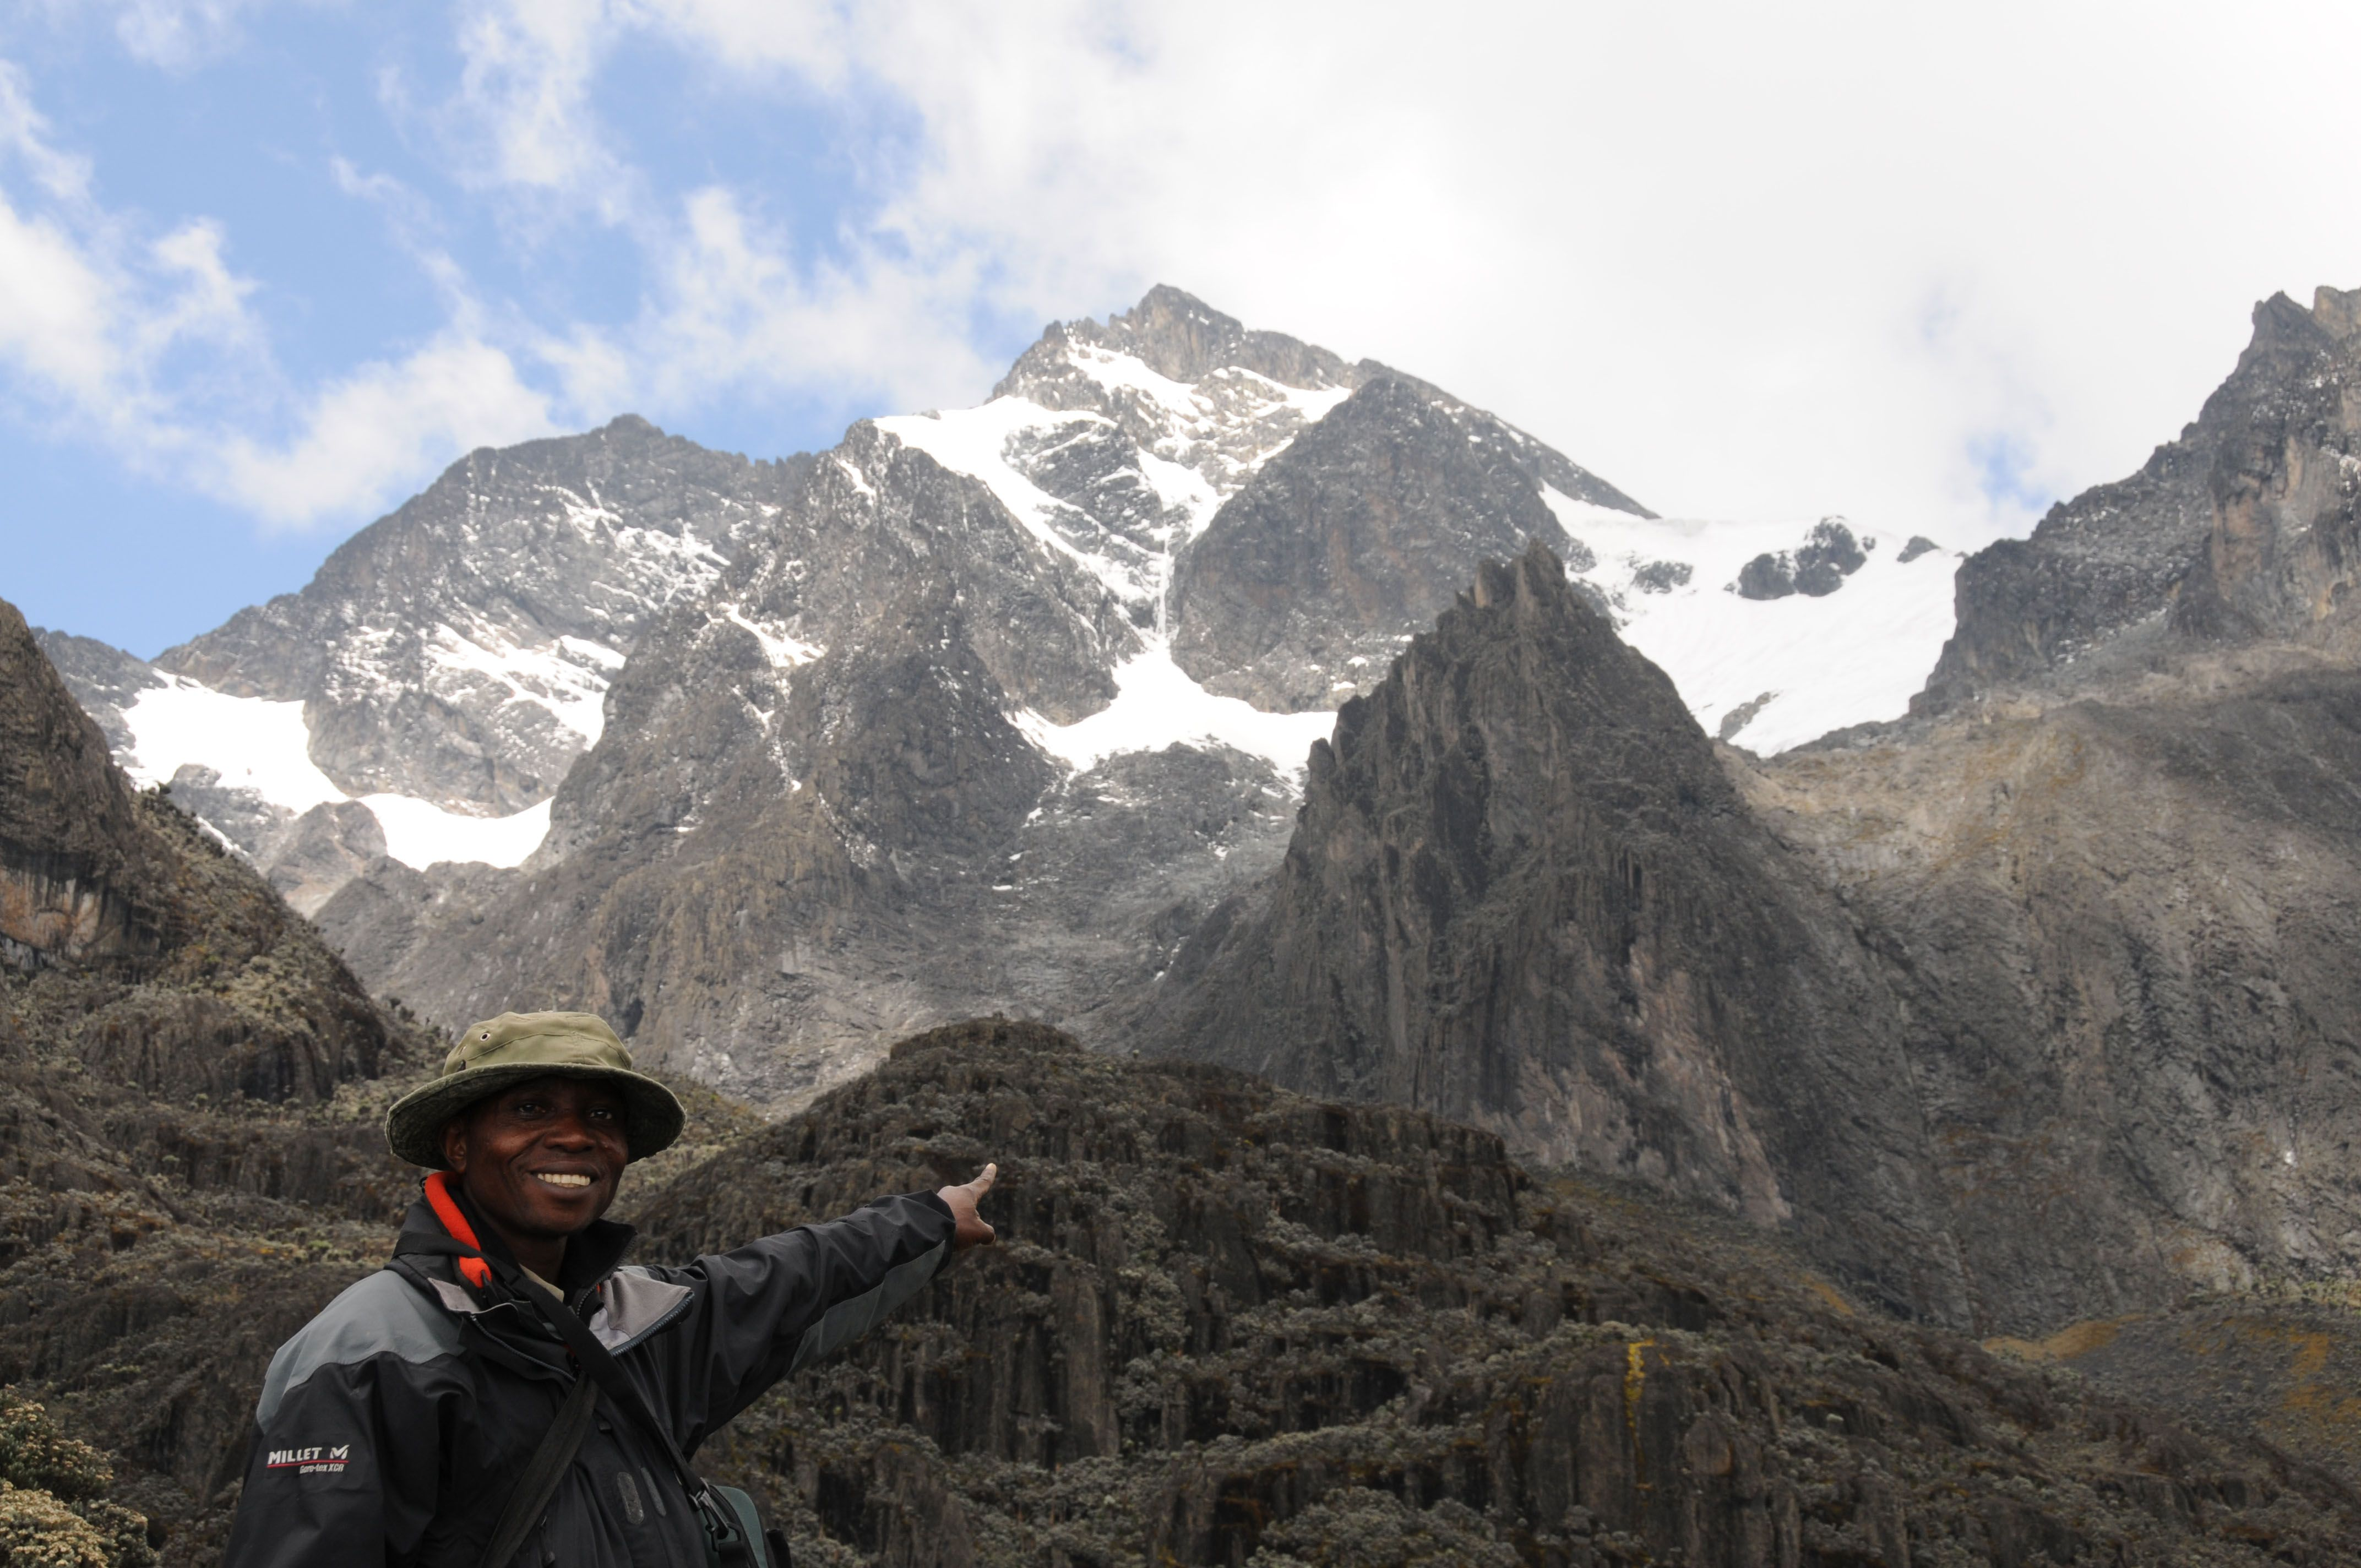 The Rwenzori Mountains In Virunga National Park, The Eastern Democratic